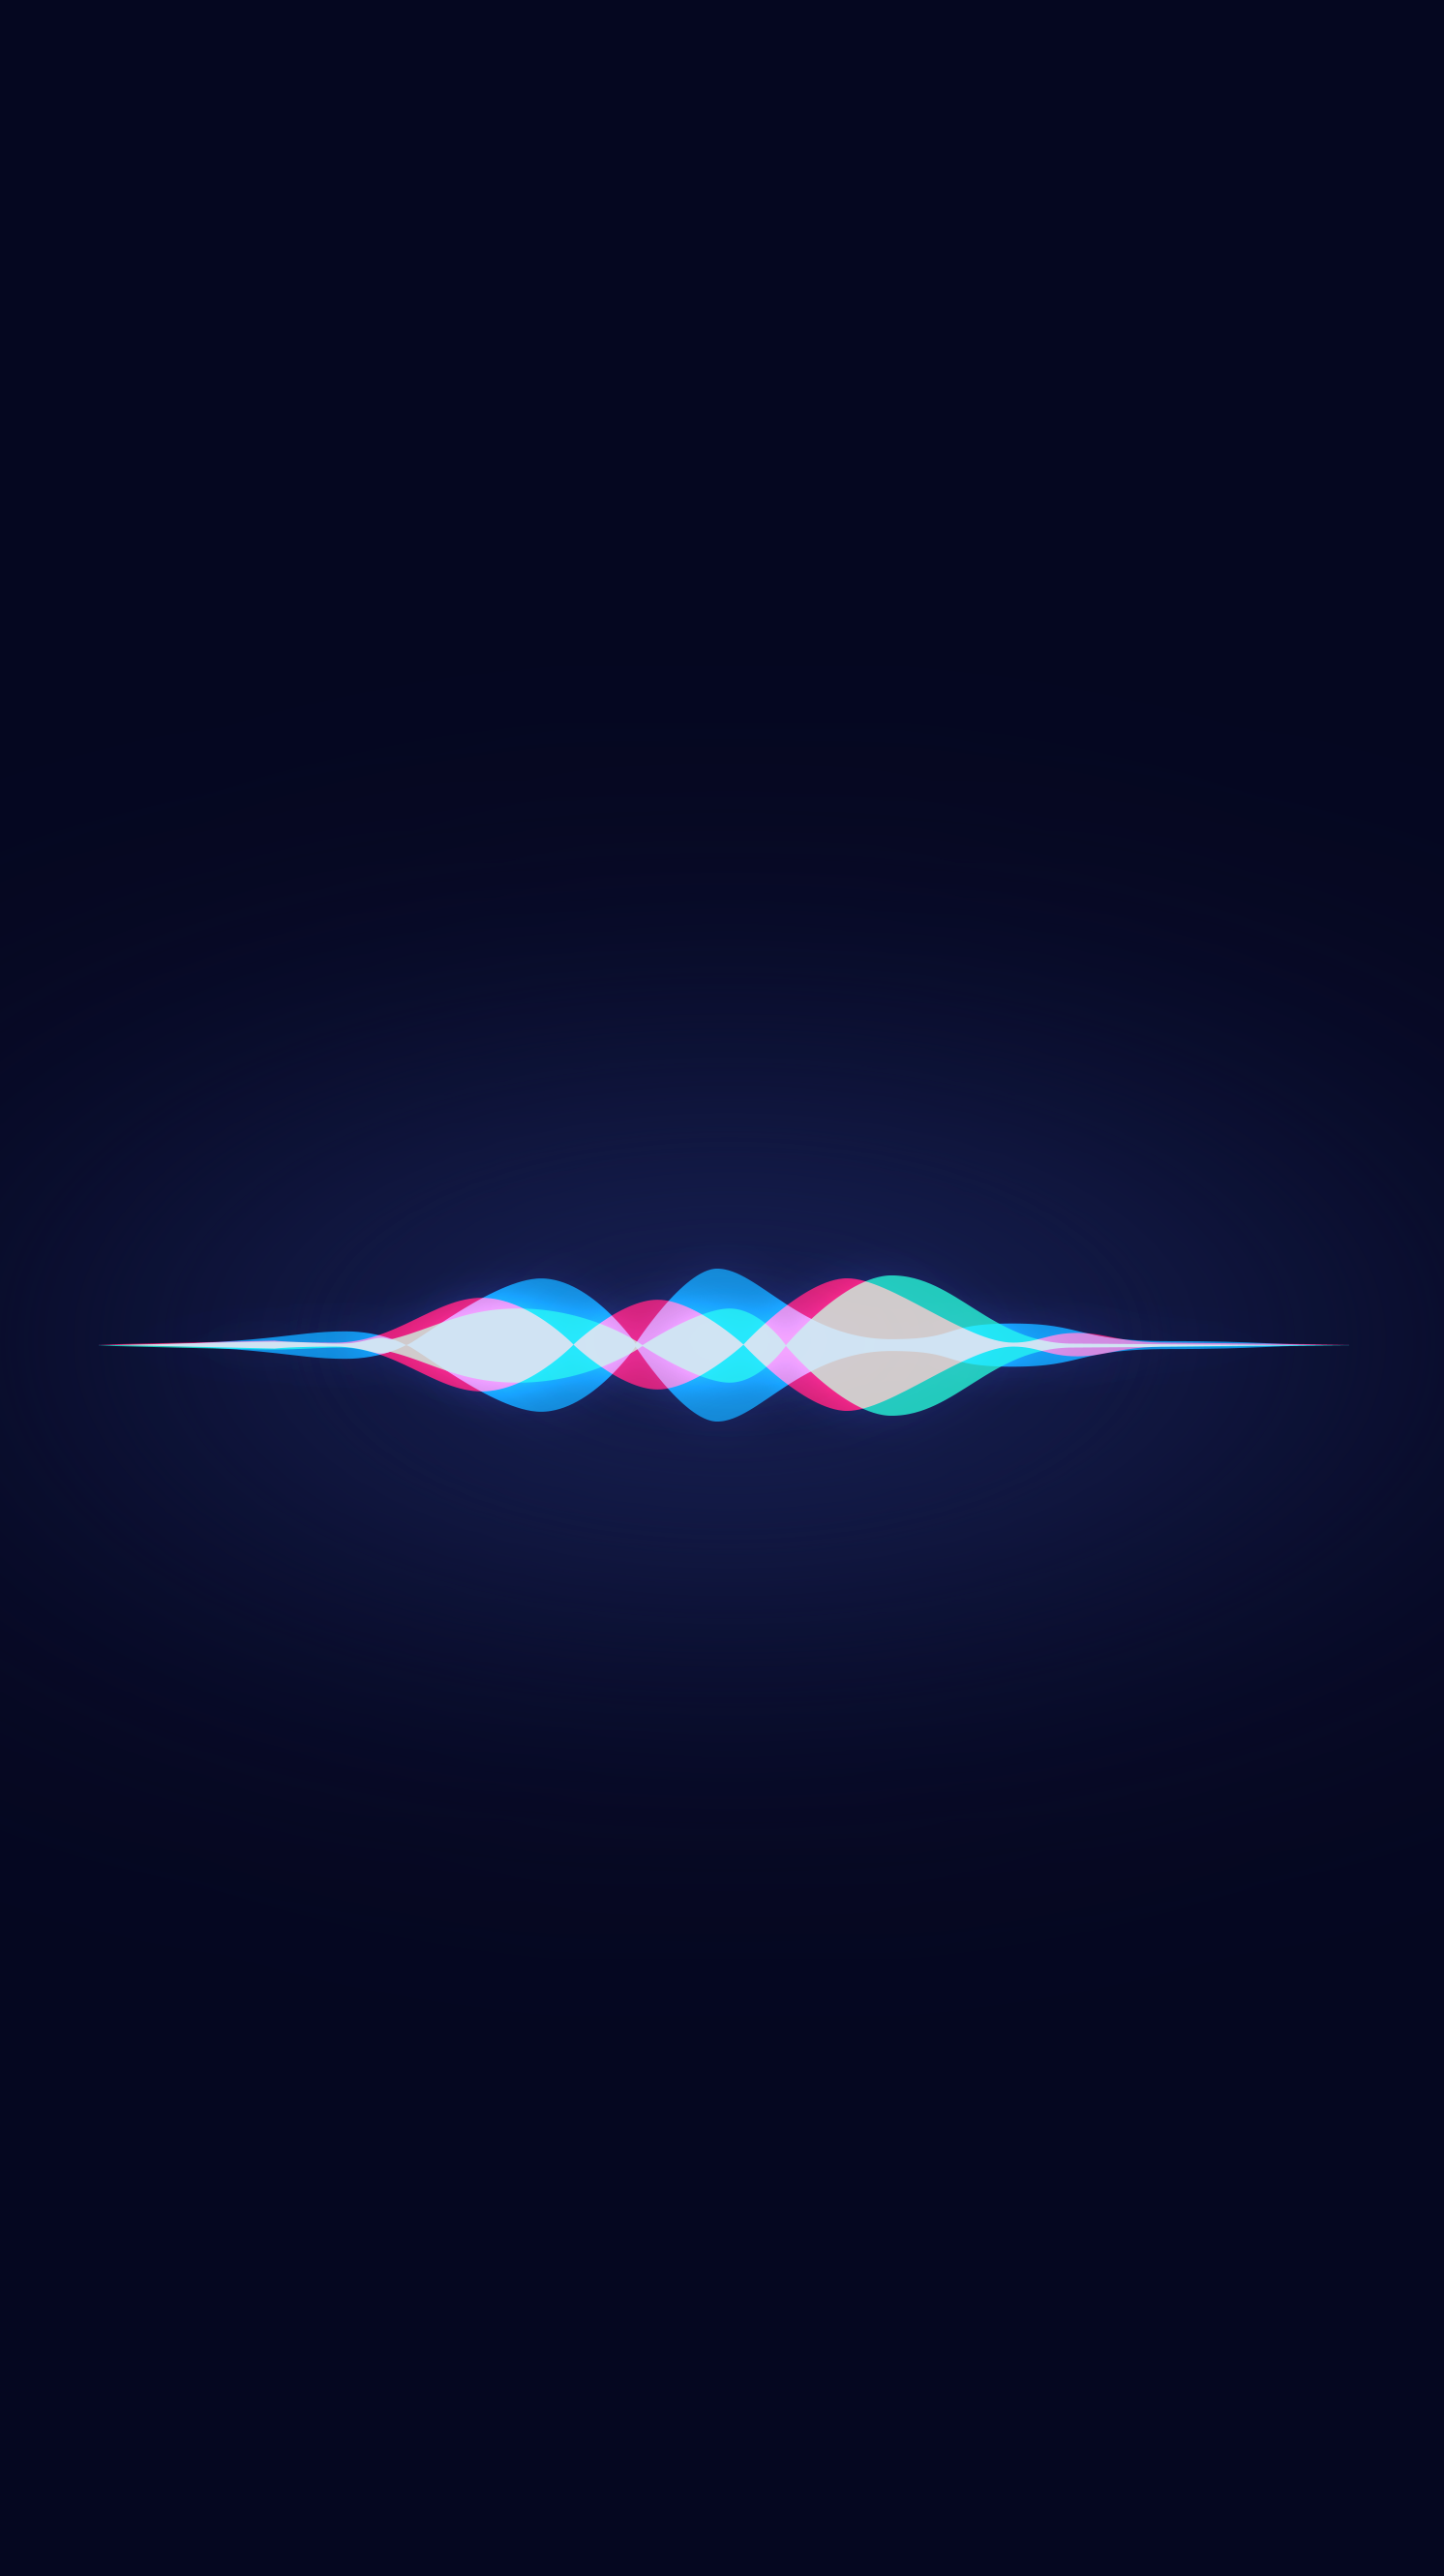 Wallpapers Of The Week: Hey Siri And Apple TV